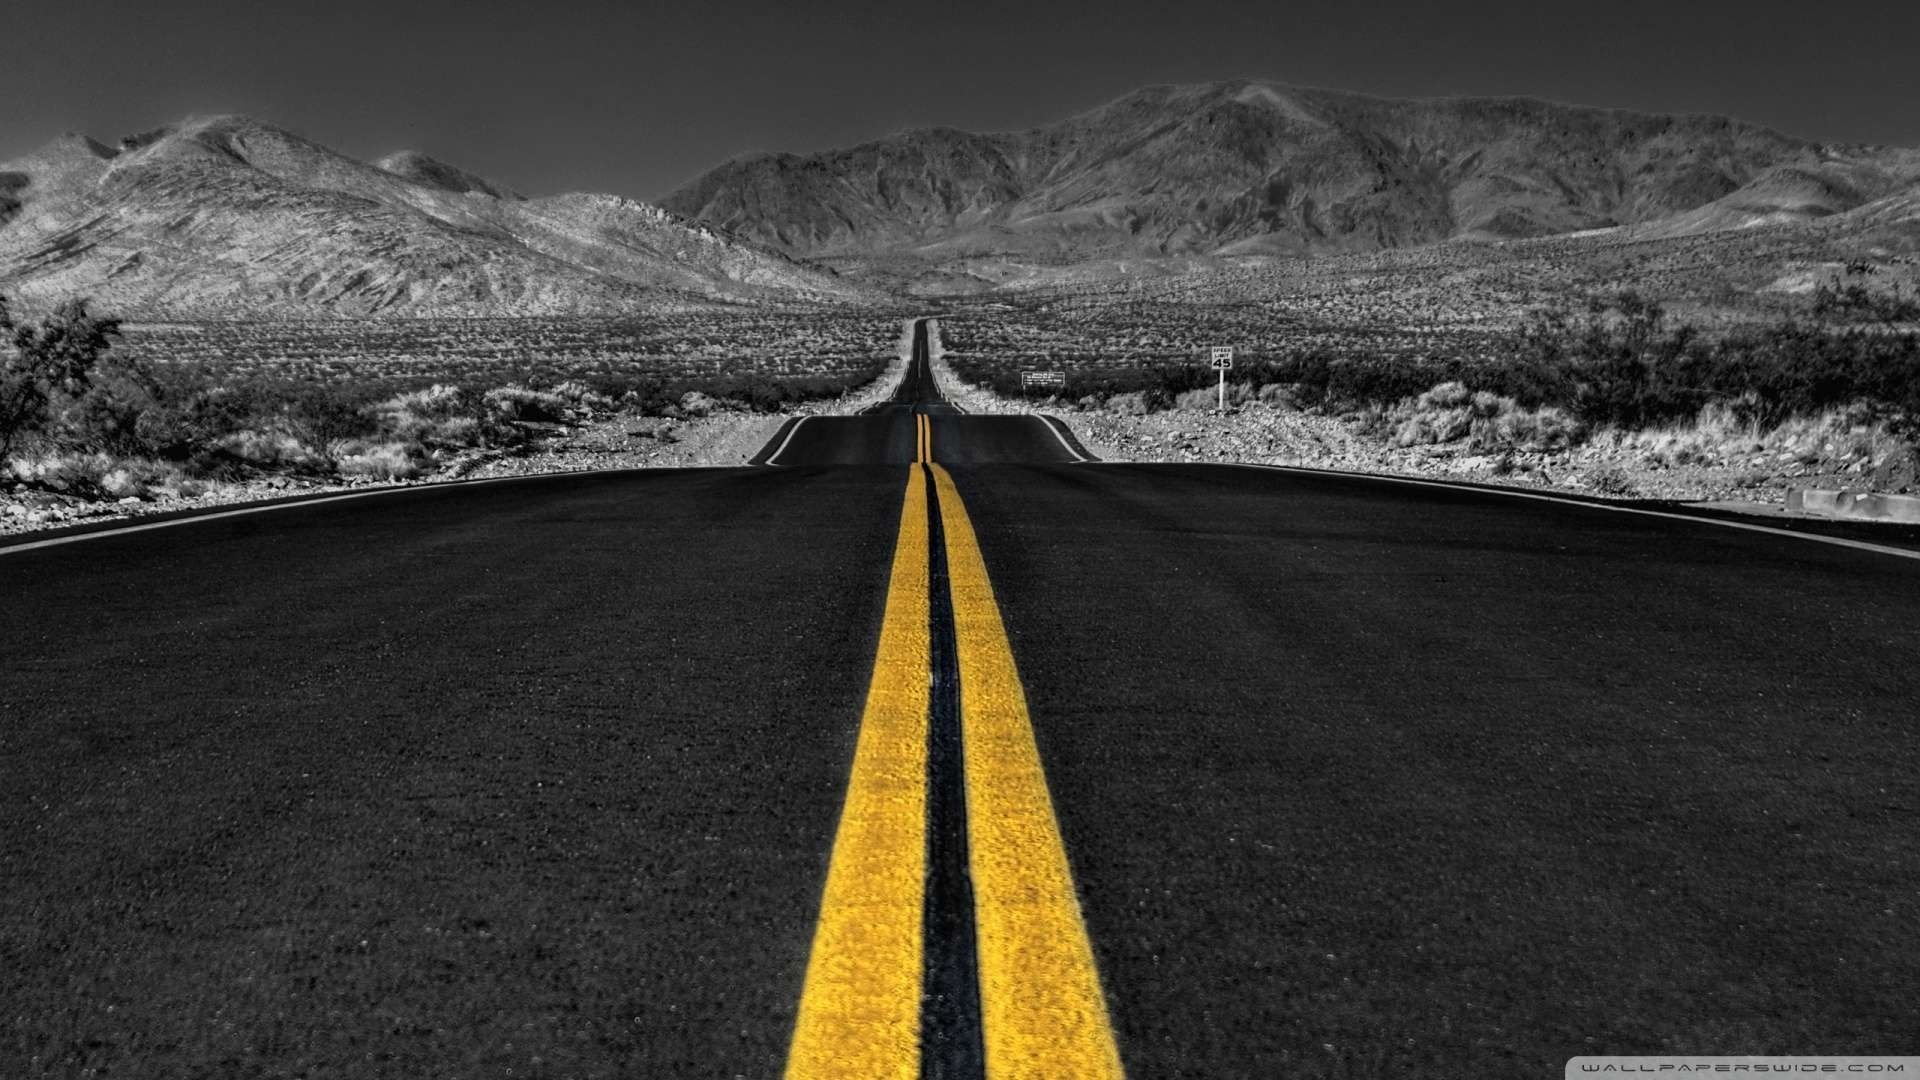 Danger road wallpaper 1920x1080 grayscale black and